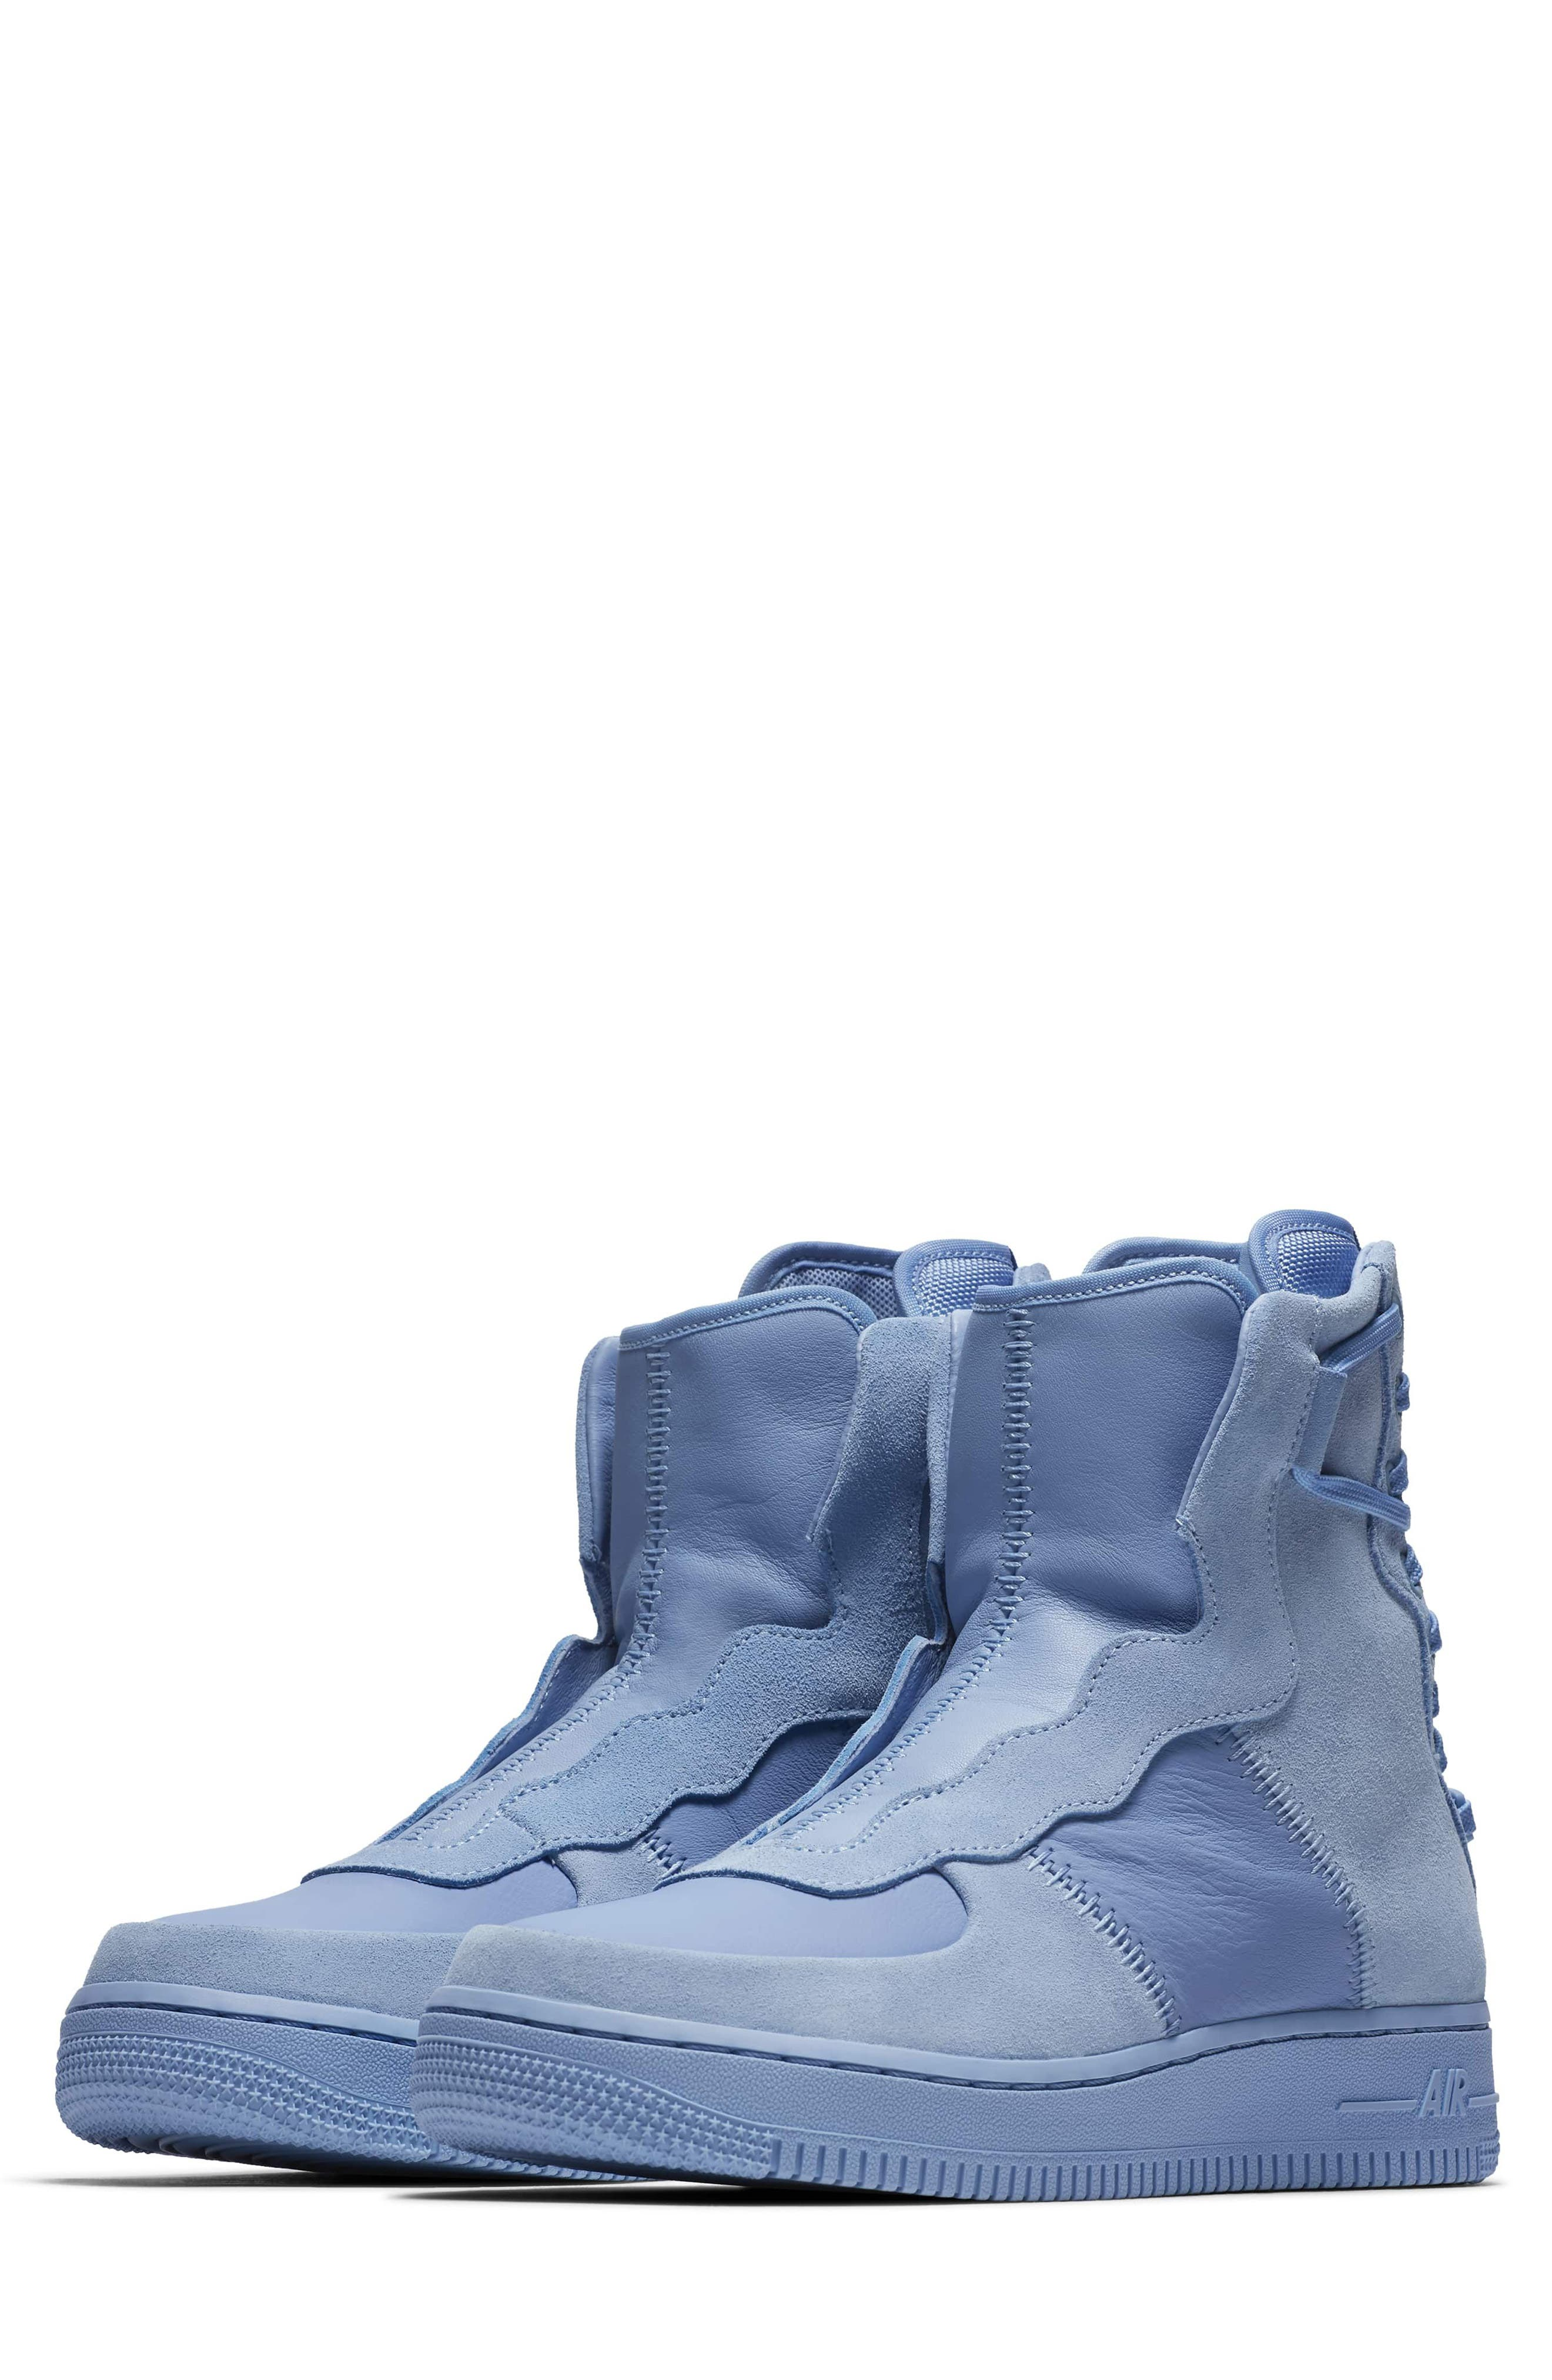 Air Force 1 Rebel XX High Top Sneaker,                             Main thumbnail 1, color,                             LIGHT BLUE